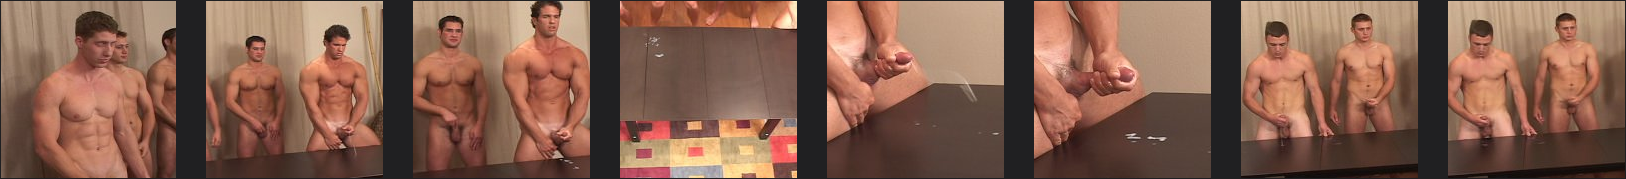 6 guys jerking off together in a cum shot contest